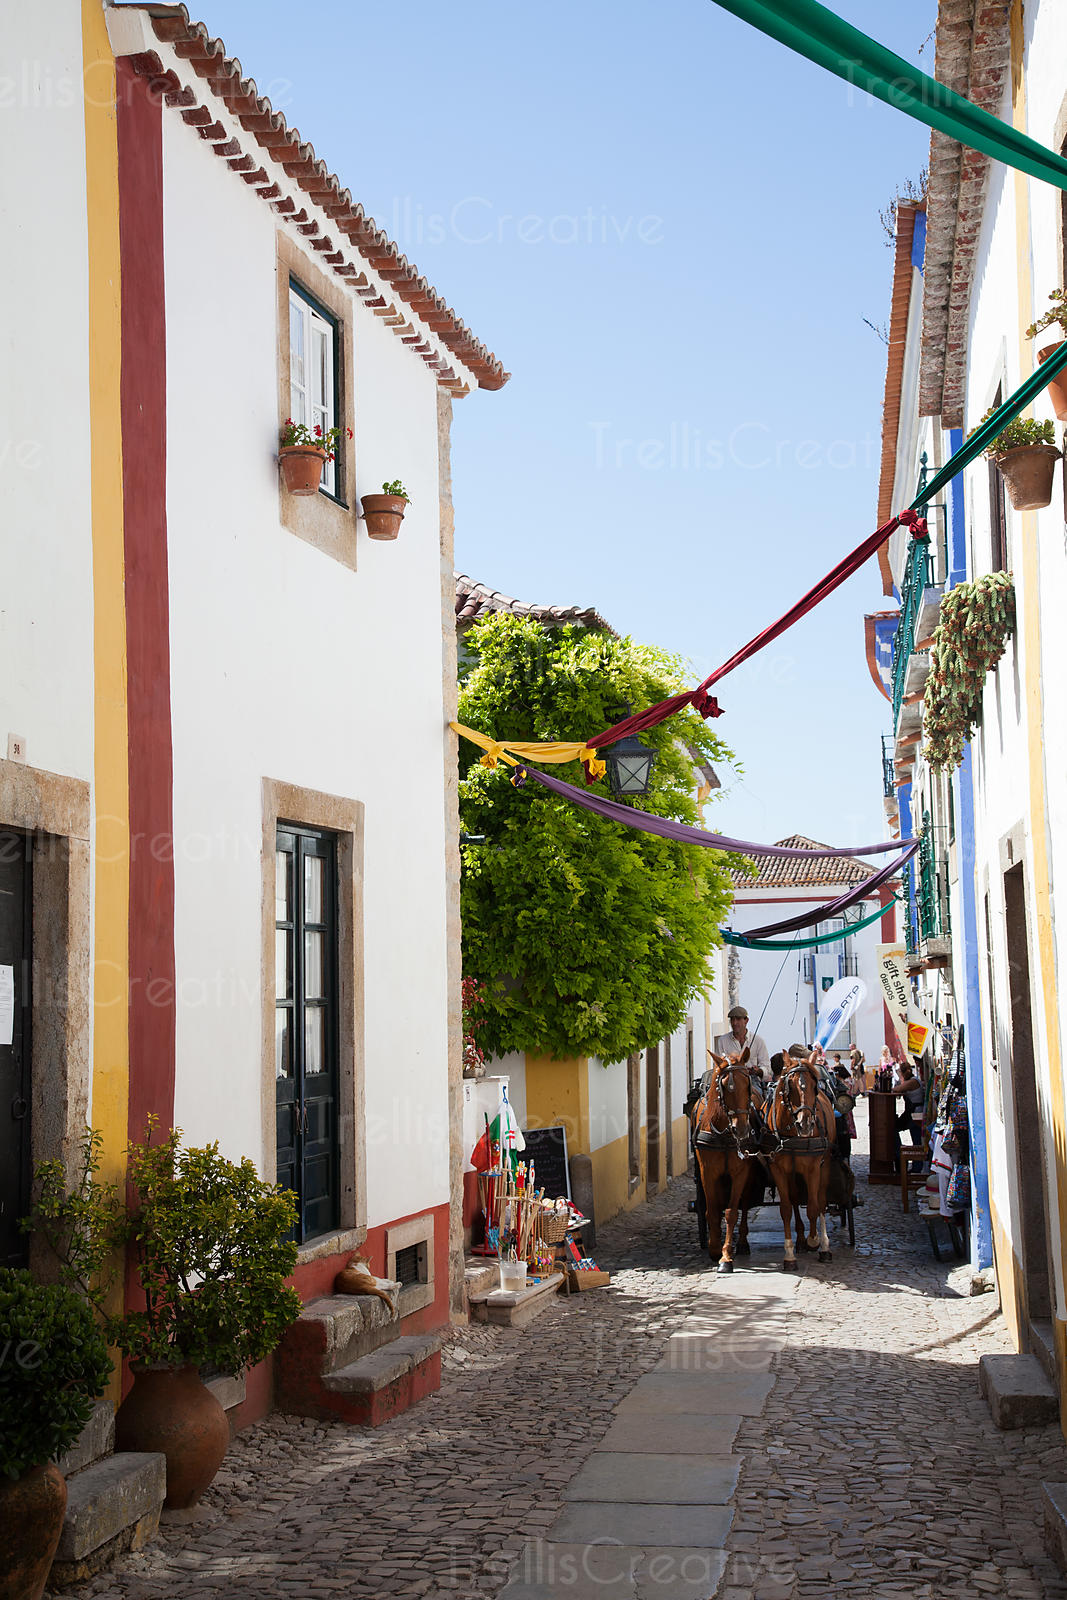 Horse-drawn carriage rides through the narrow streets of Obidos, Portugal